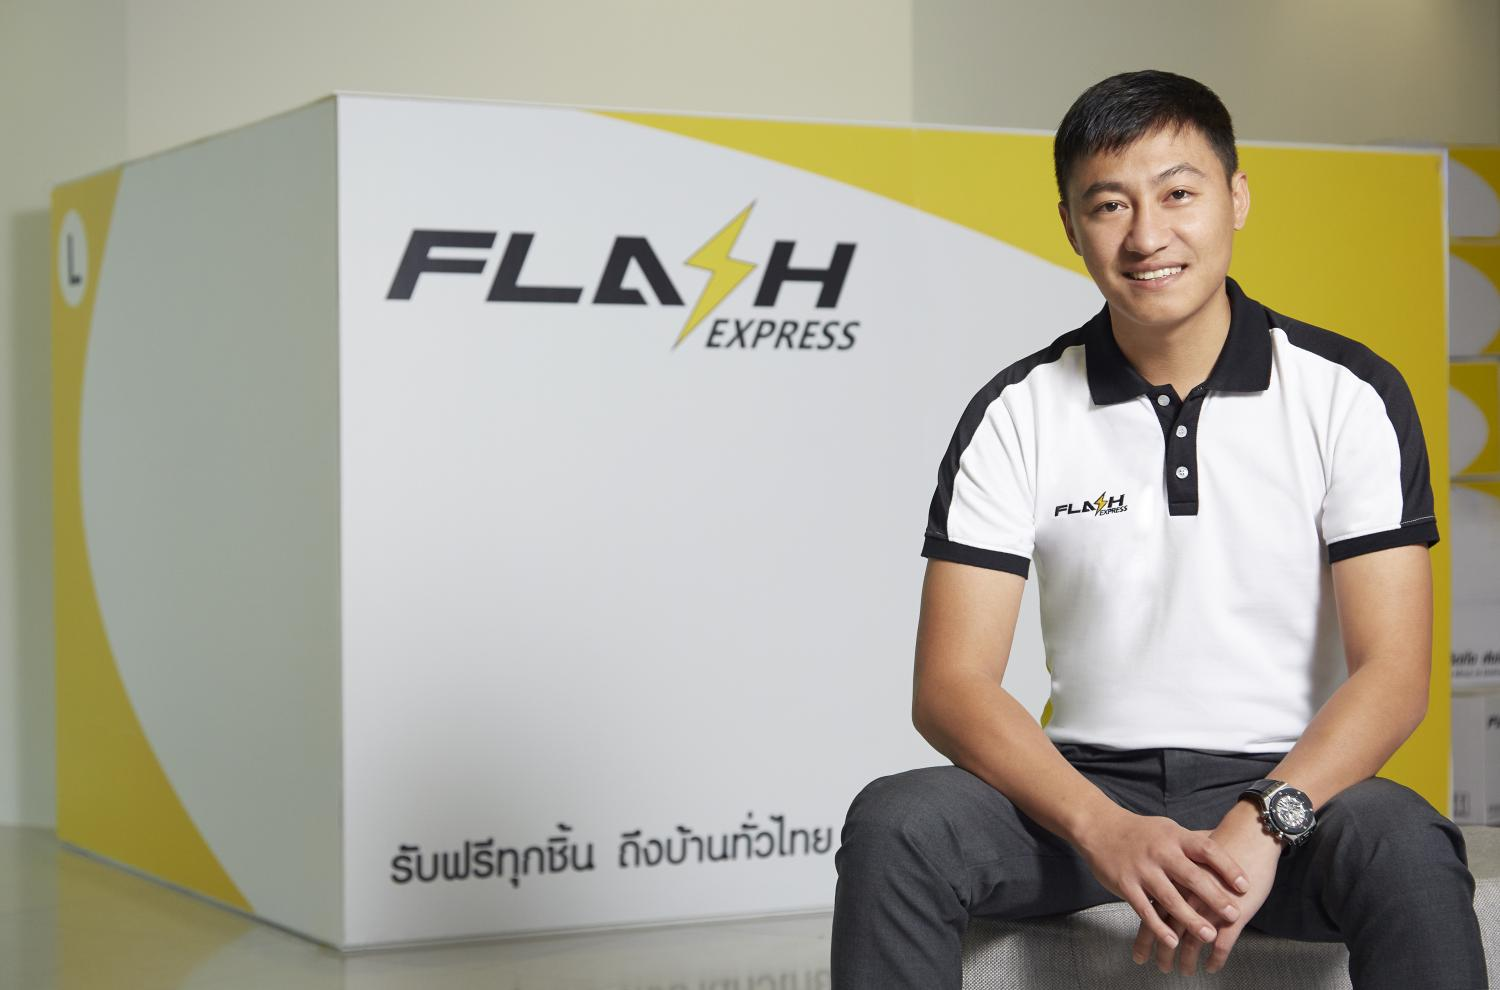 Mr Komsan started Flash Express in 2018 with 400 million baht.